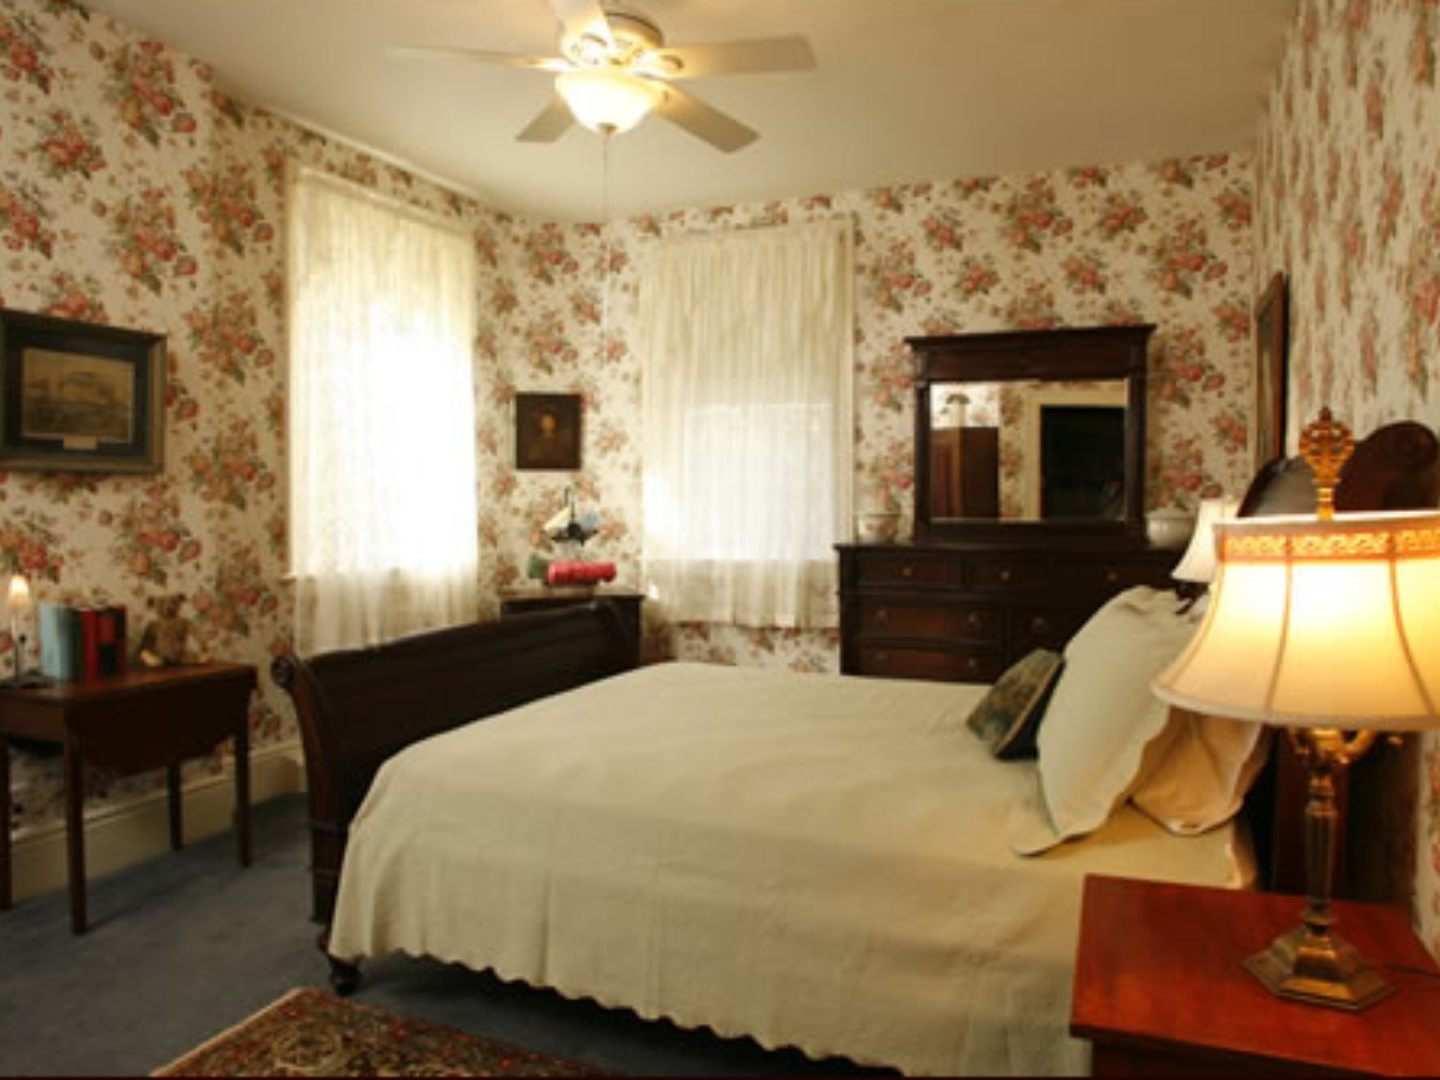 A hotel room with a bed and a fireplace at Temple Hill Bed & Breakfast.